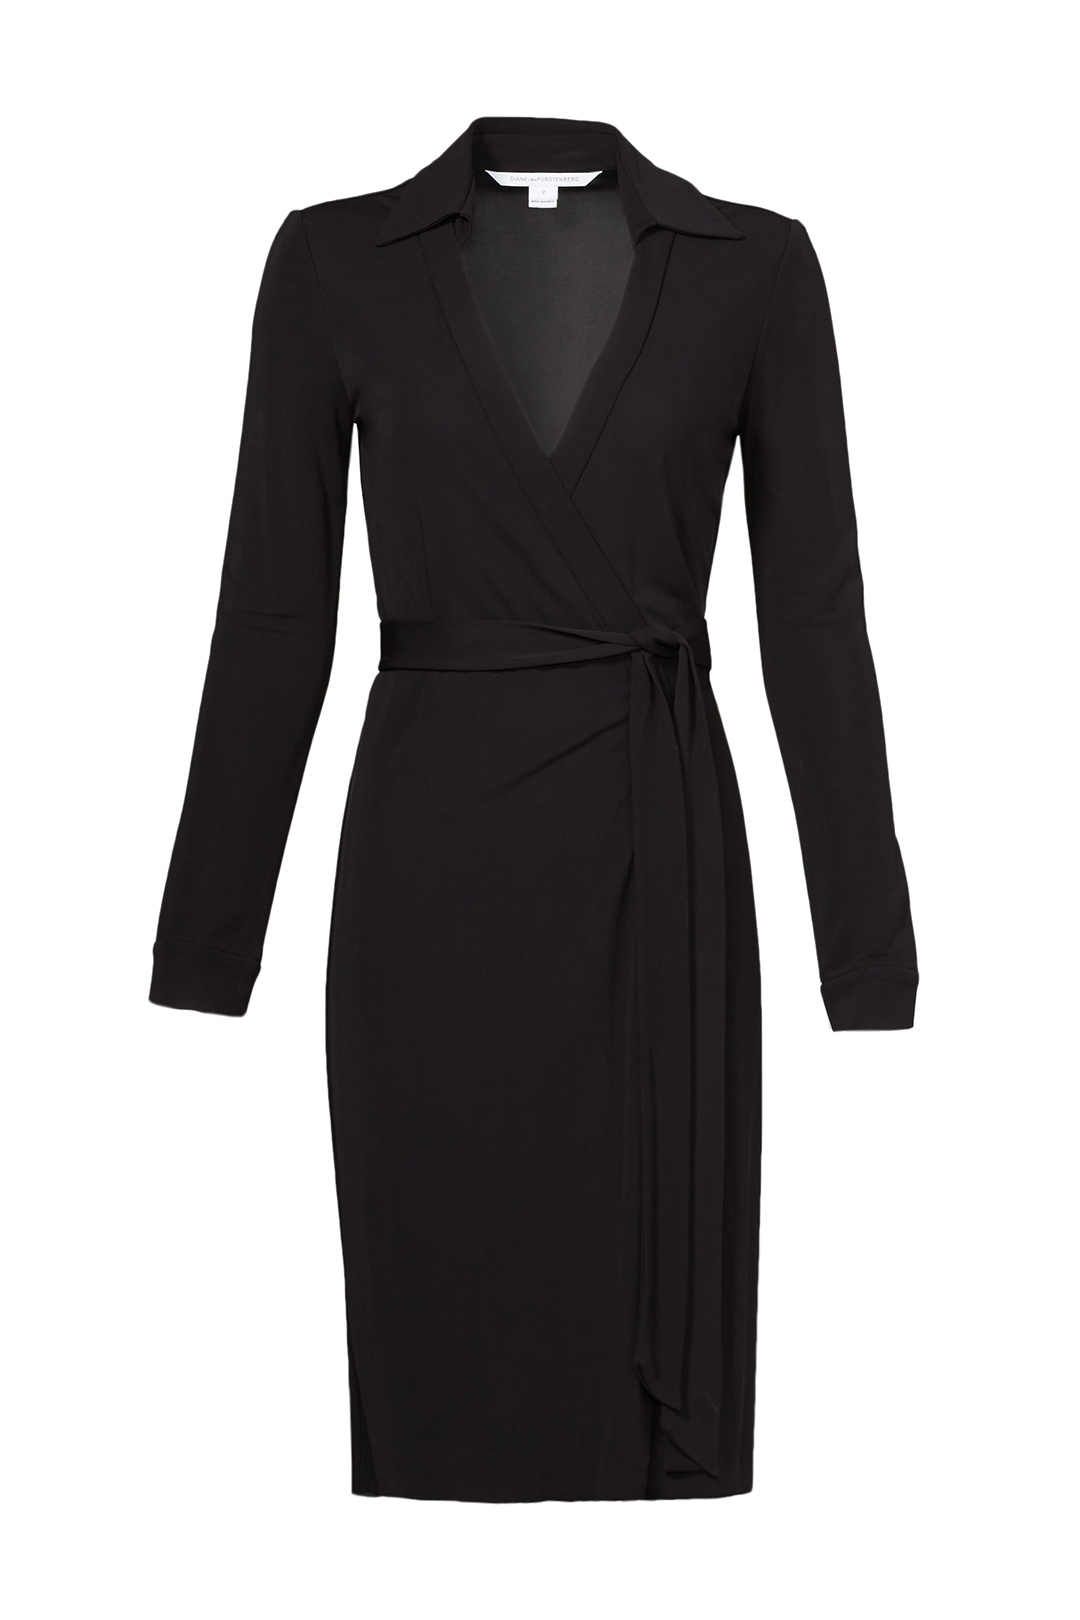 Diane Von Furstenberg - Jeanne Two Dress